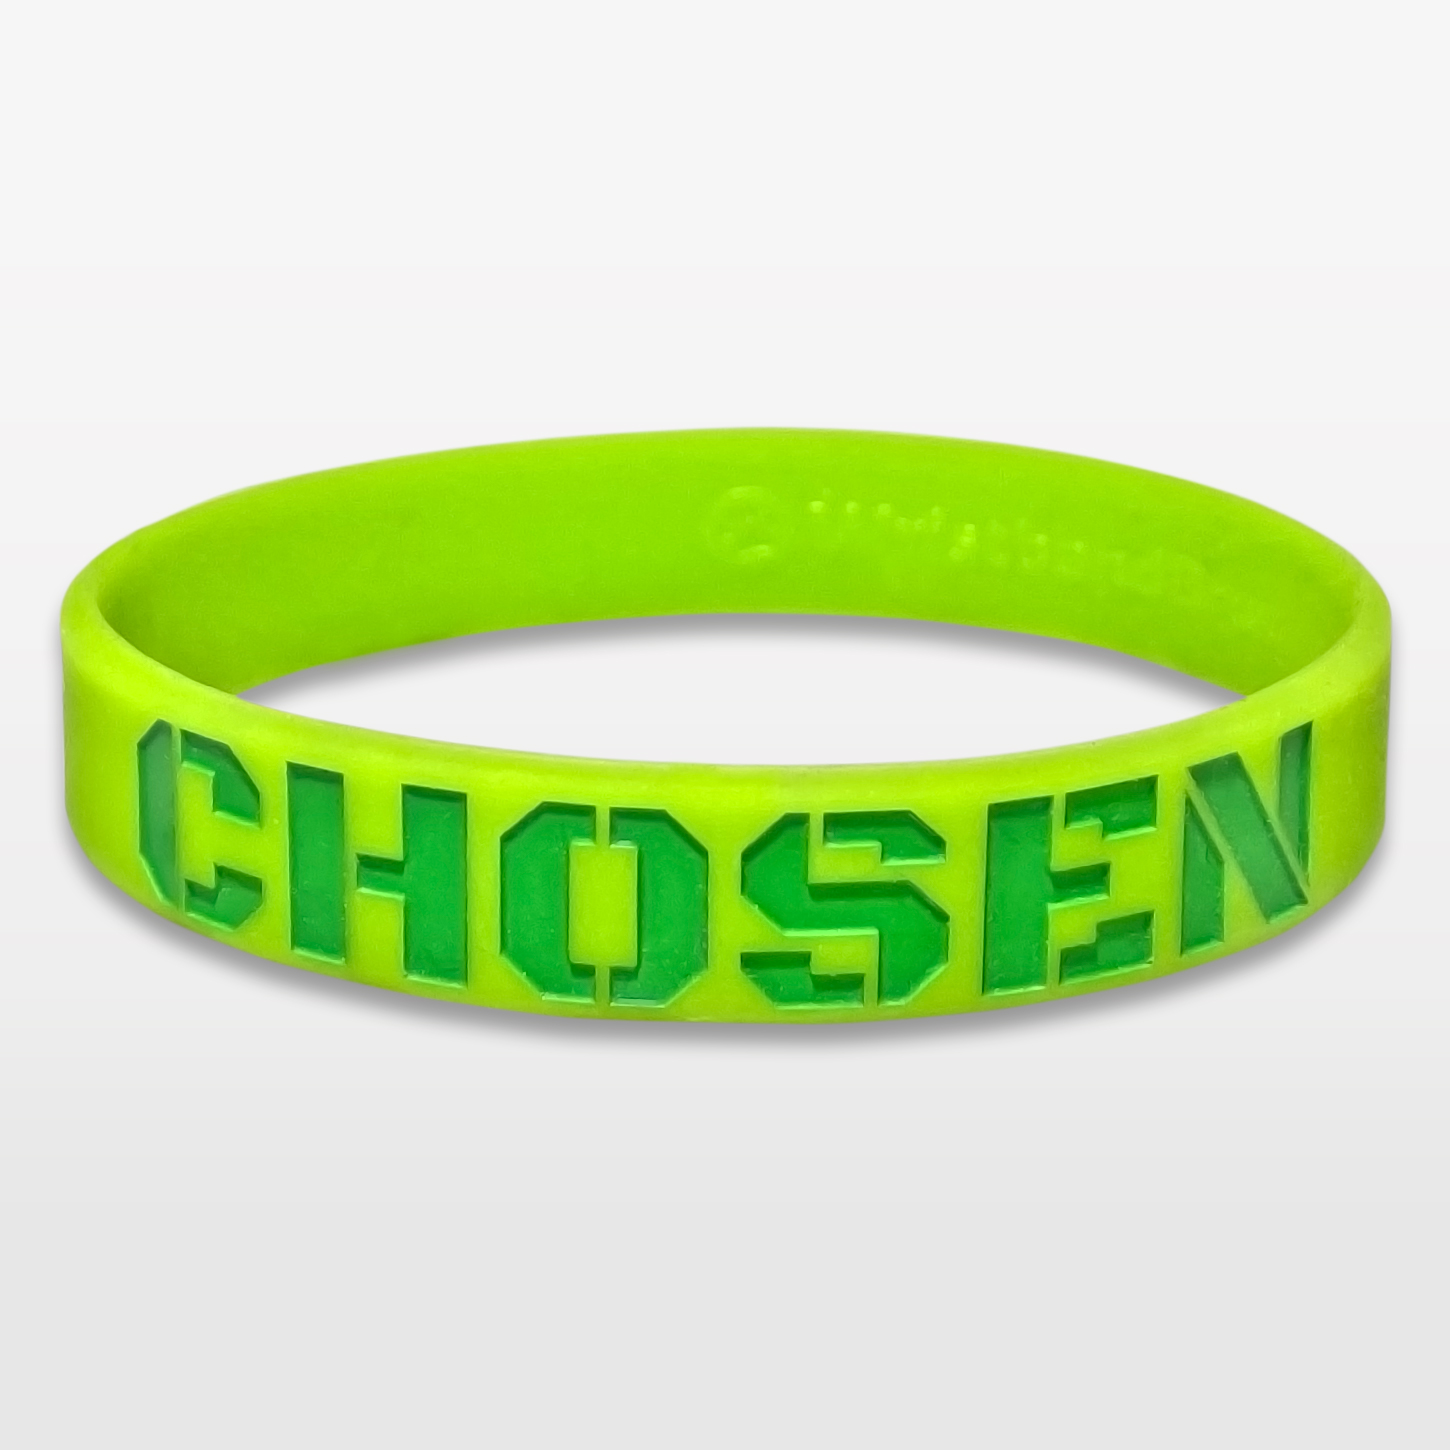 Chosen Classic Silicone Wristband custom made for a customer